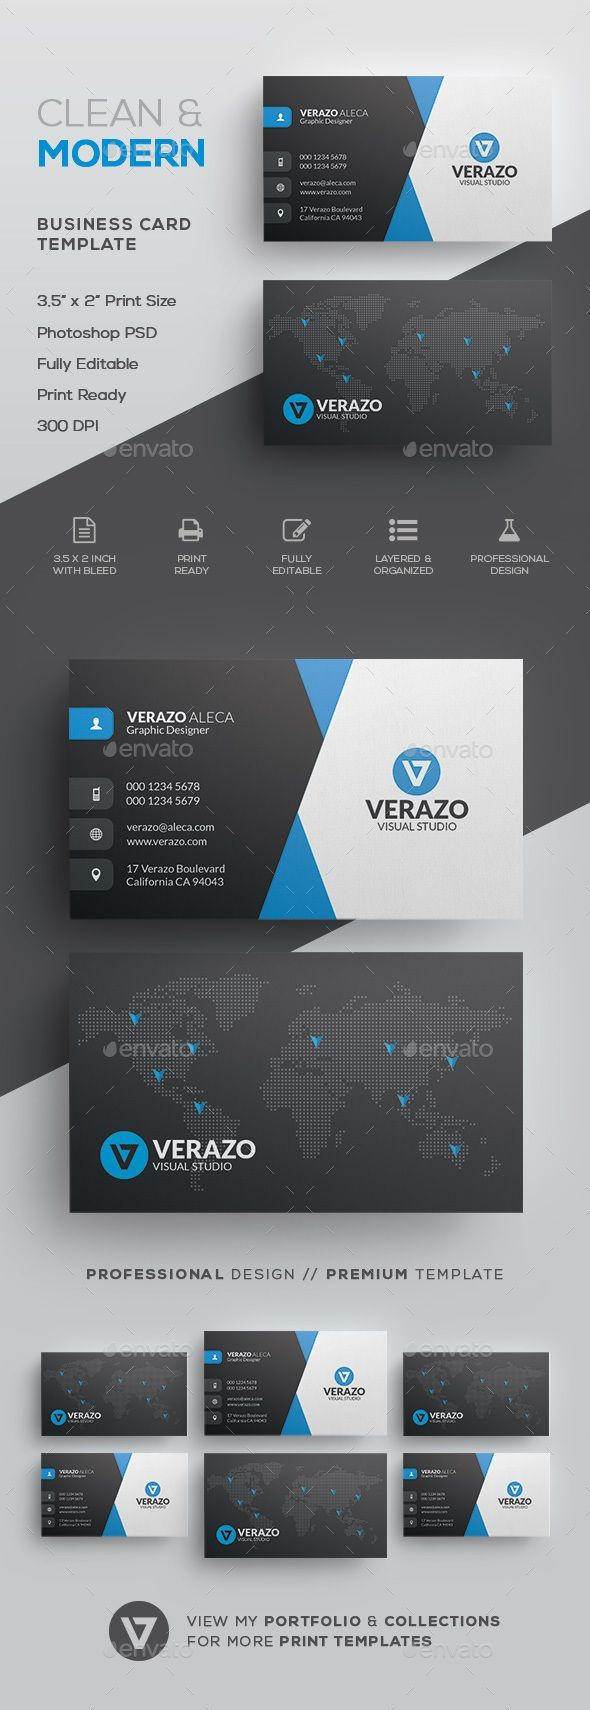 Card Templates For Word Enchanting Templates  Business Card Template Word Online Also Business Card .